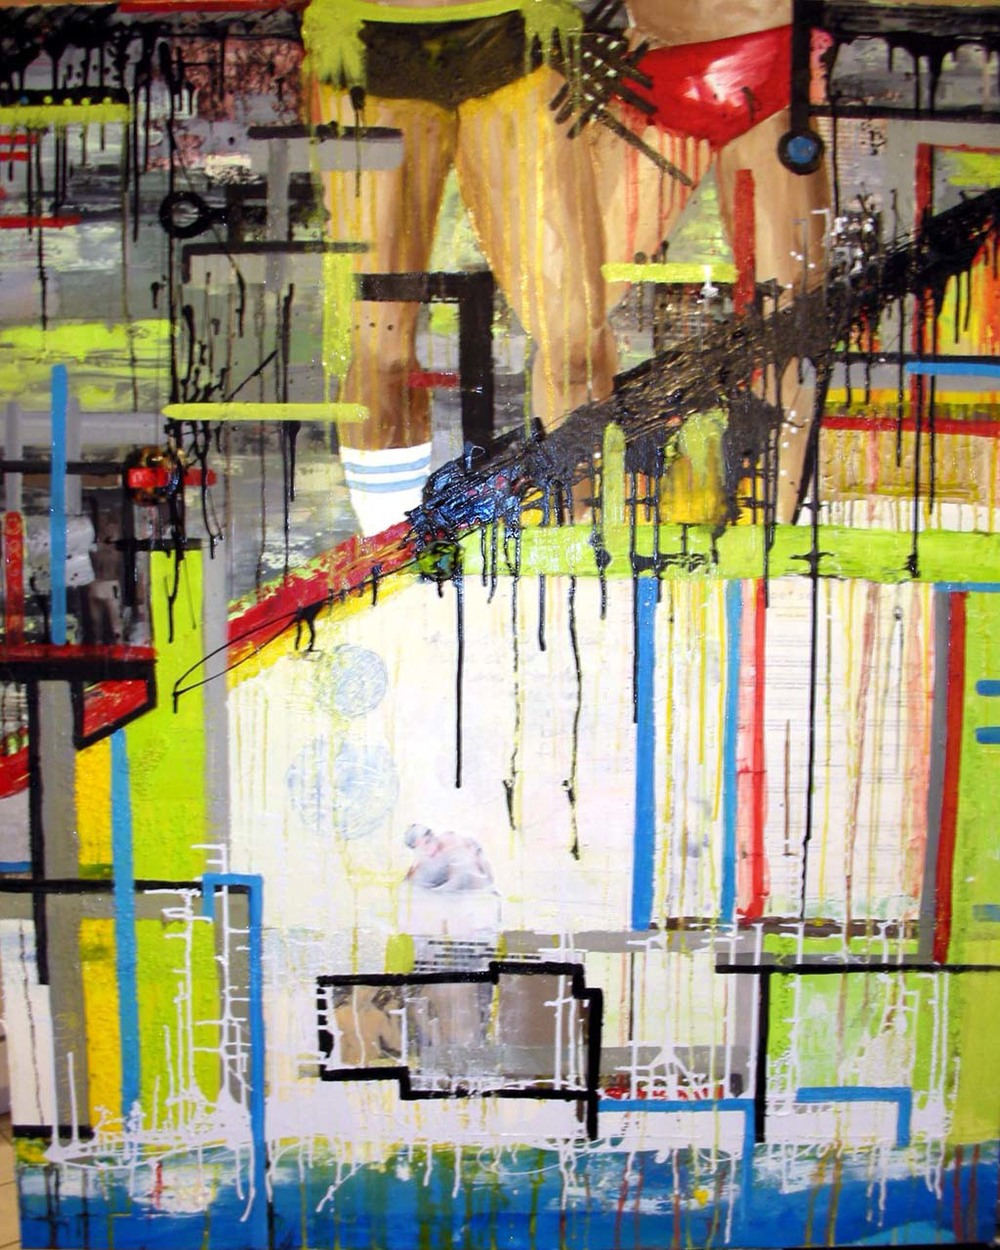 Prurient, 2006, Oil and Mixed Media on canvas, 40 x 50 inches